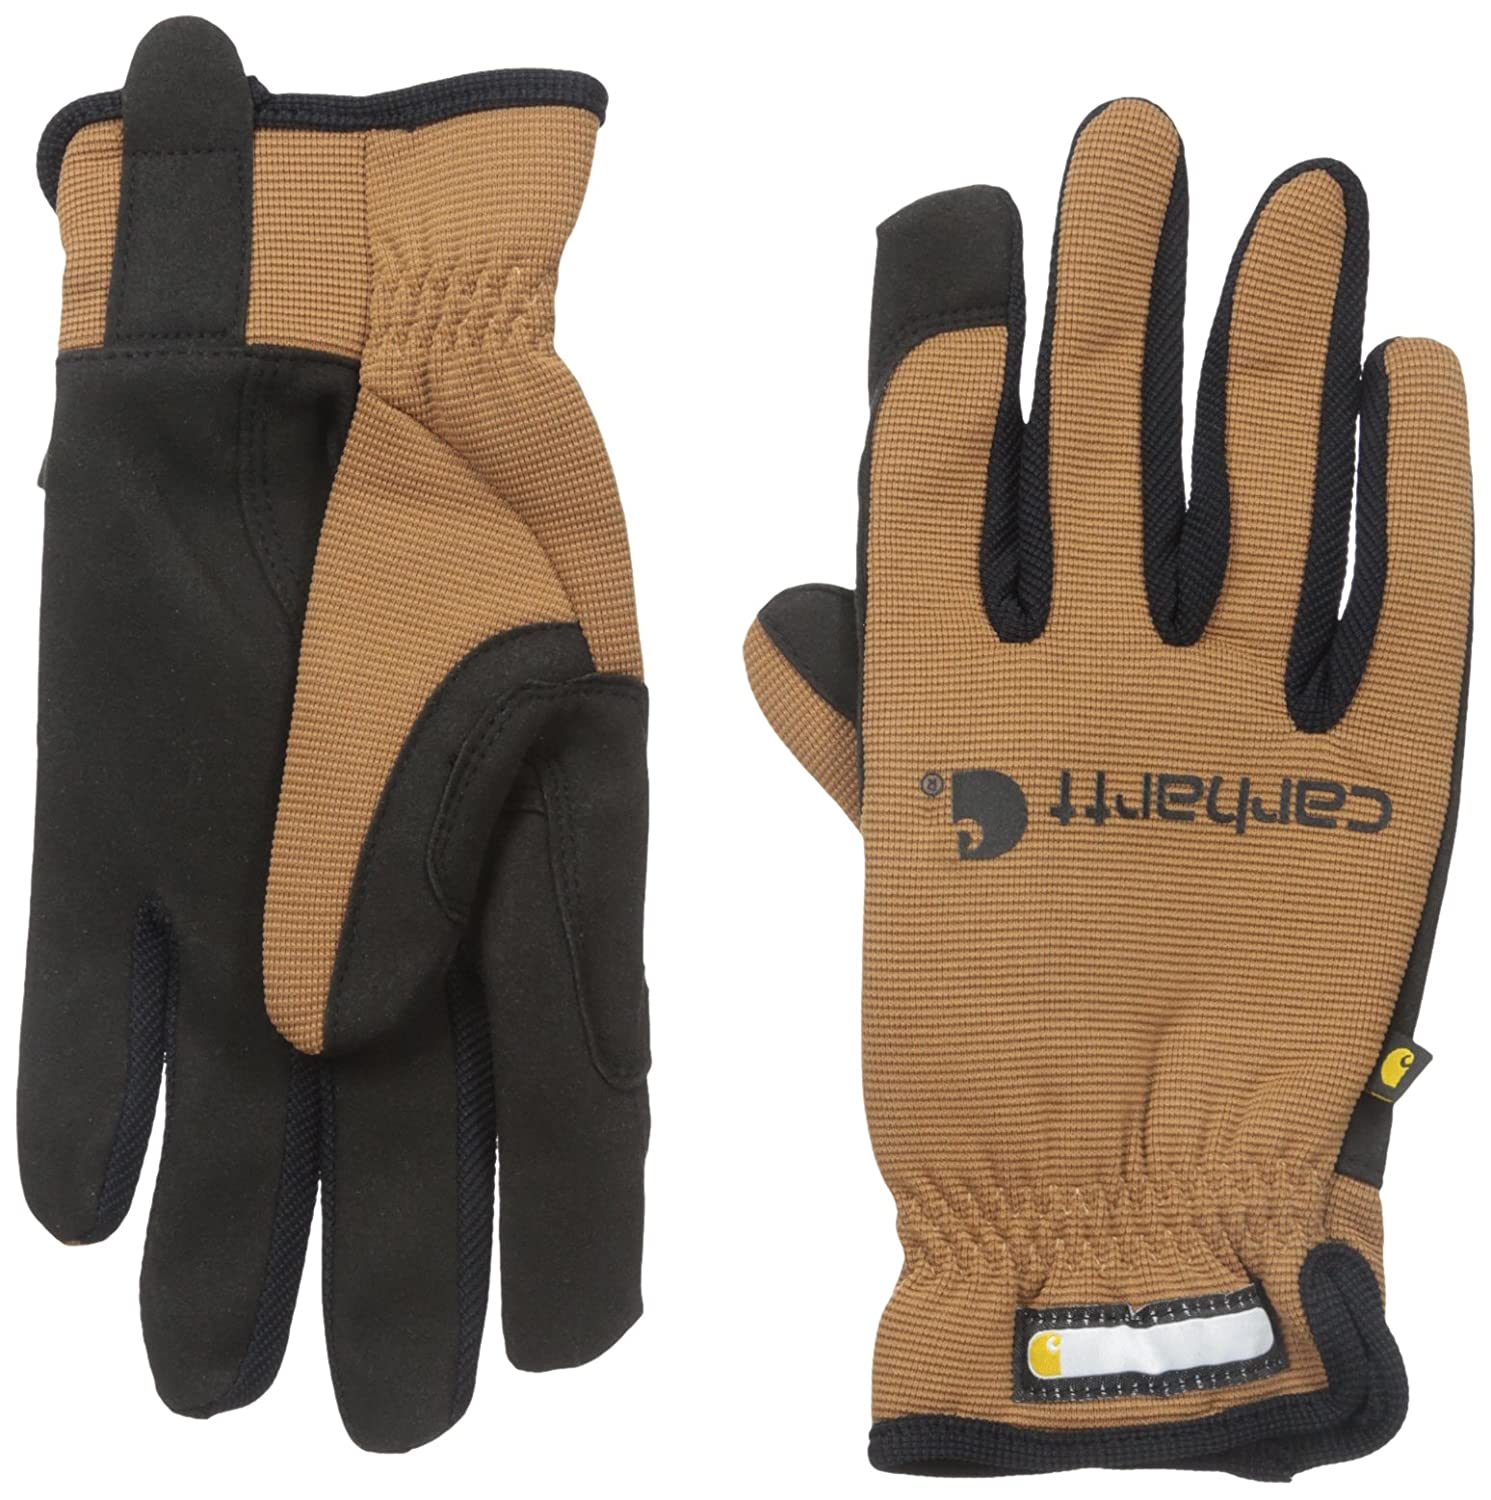 Carhartt mens Work Flex Glove Carhartt Men's Gloves A547